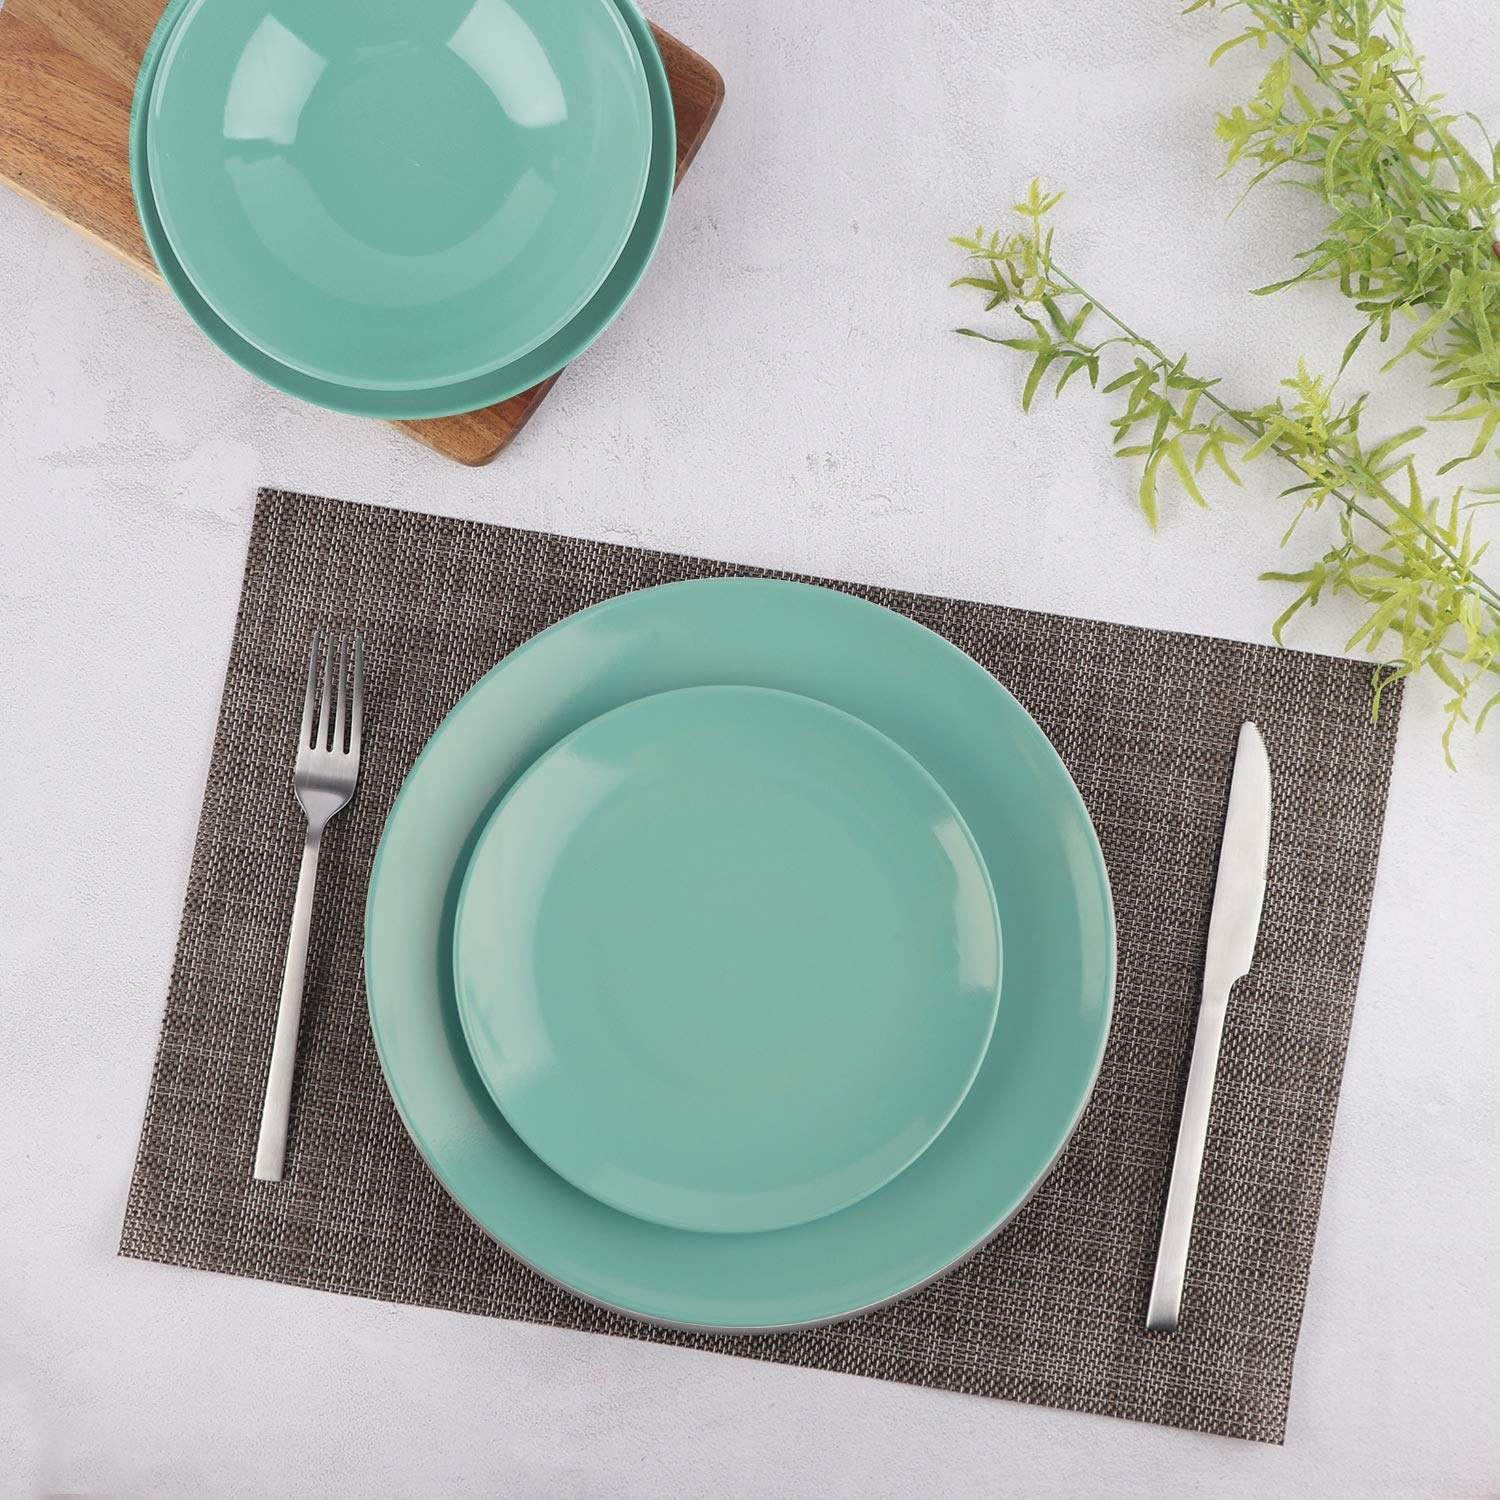 A teal dinner plate with a quarter plate on top of it on a placemat